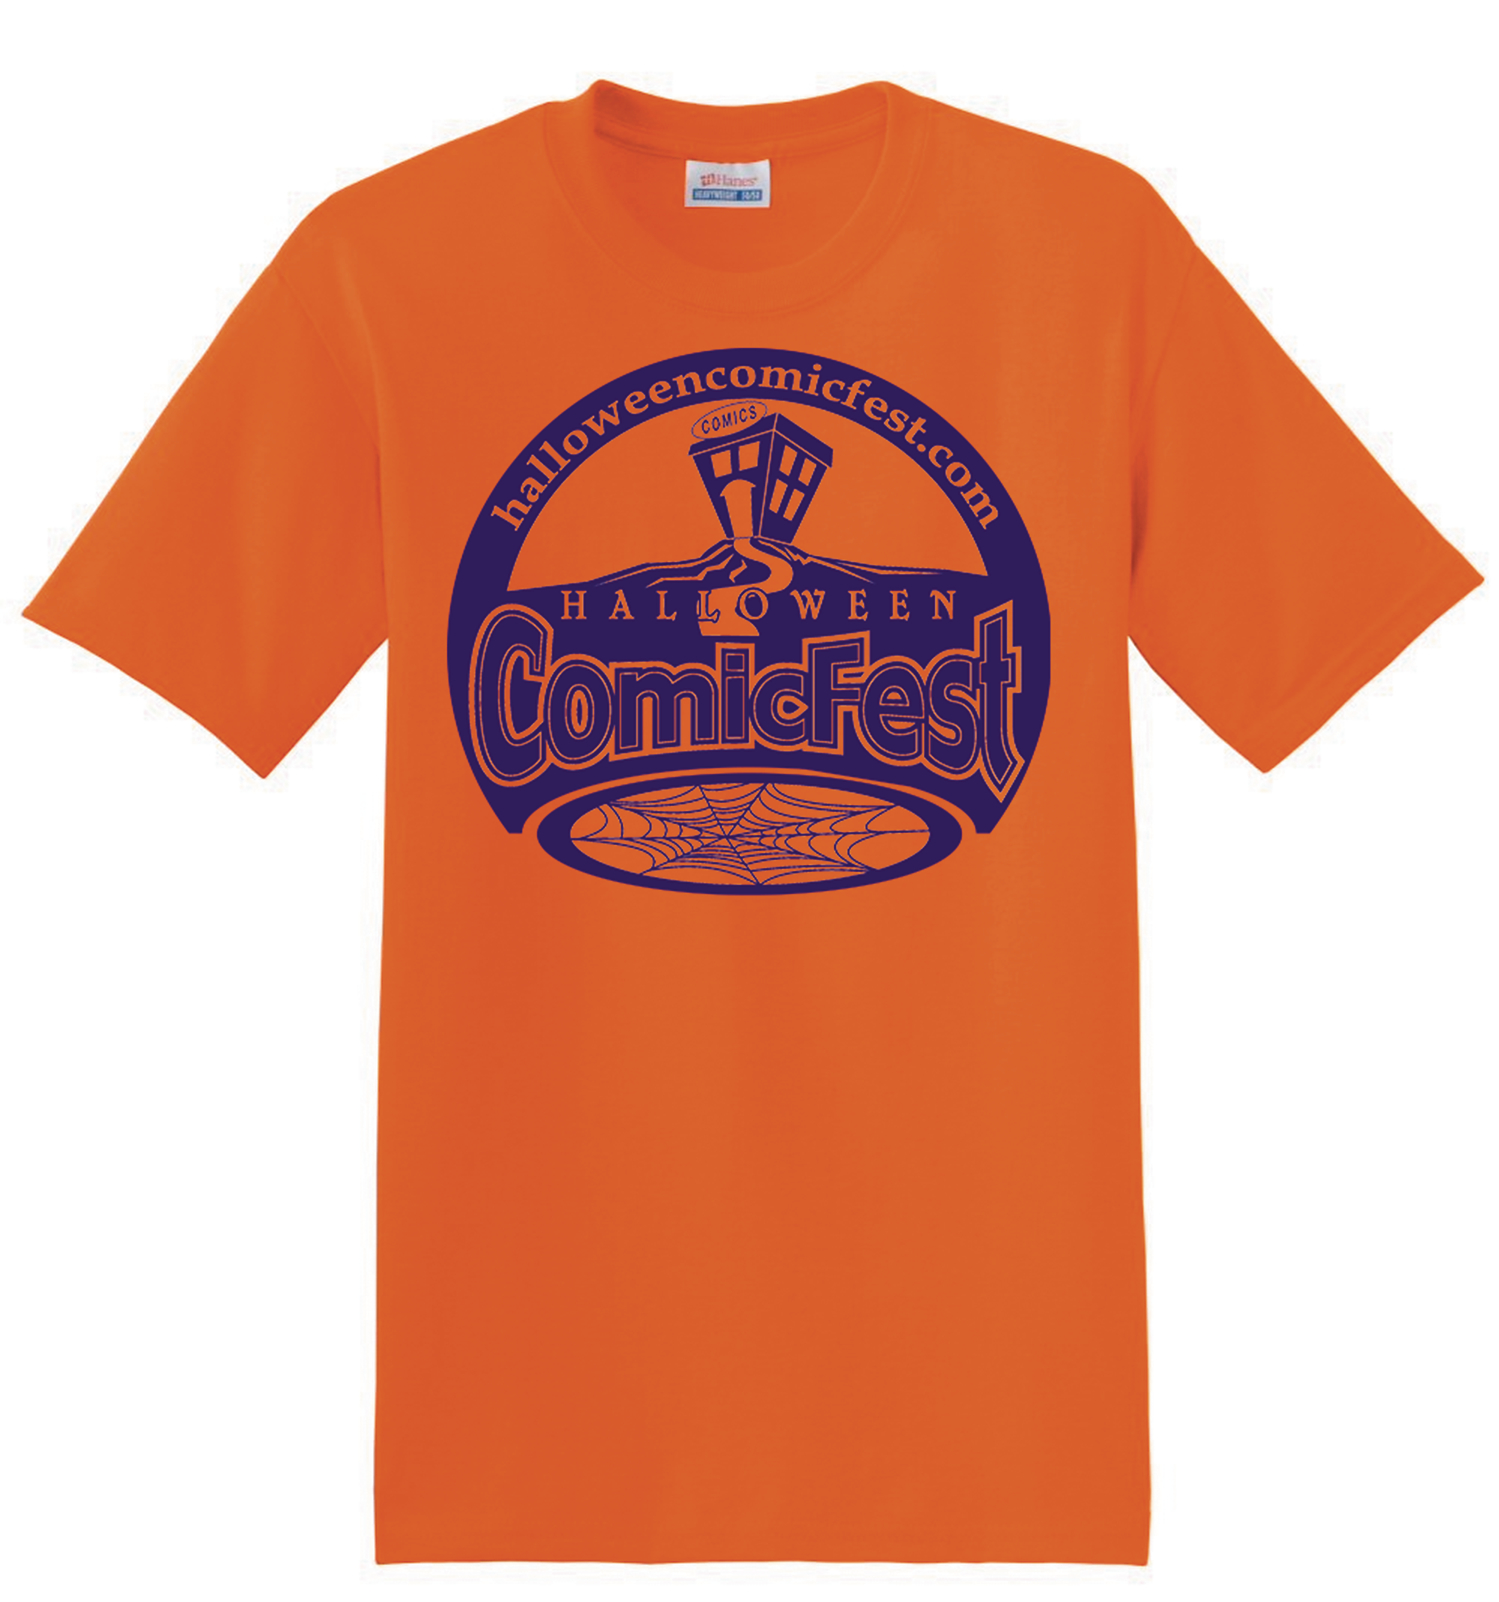 HCF ORANGE LOGO T-SHIRT XXXL